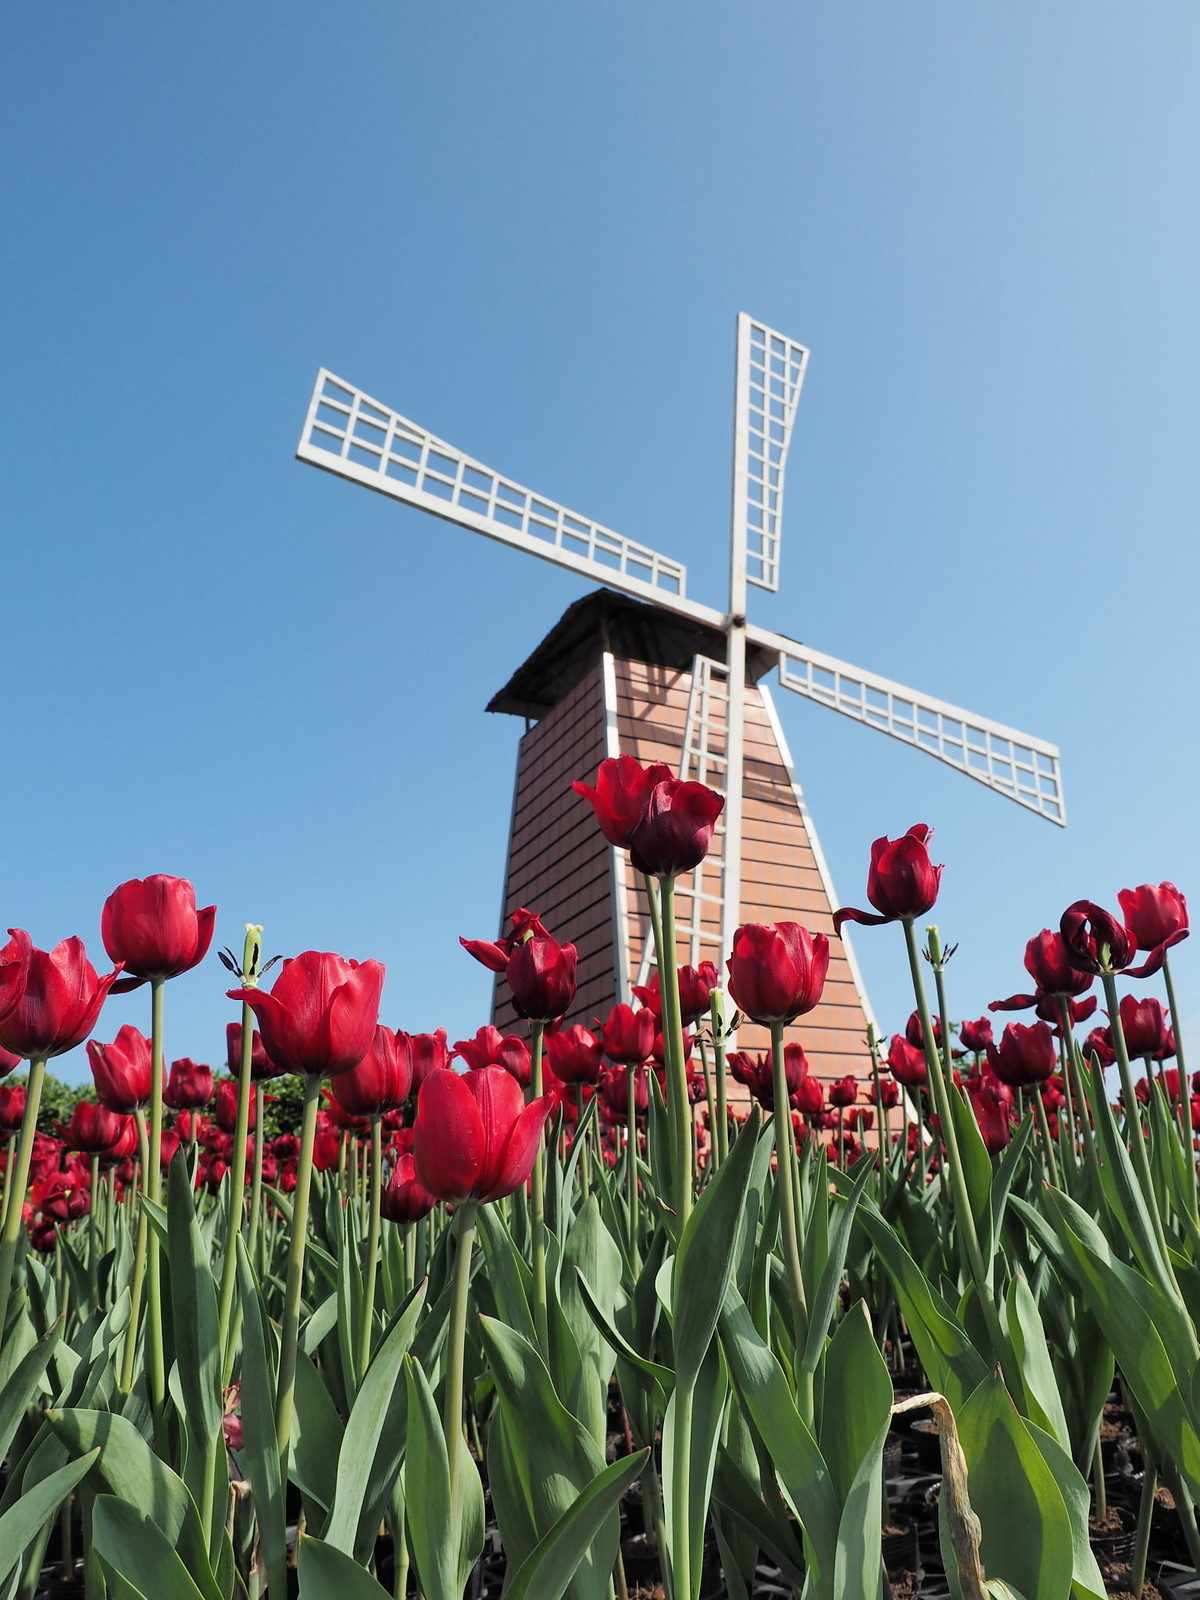 Red tulip flowers and the windmill.